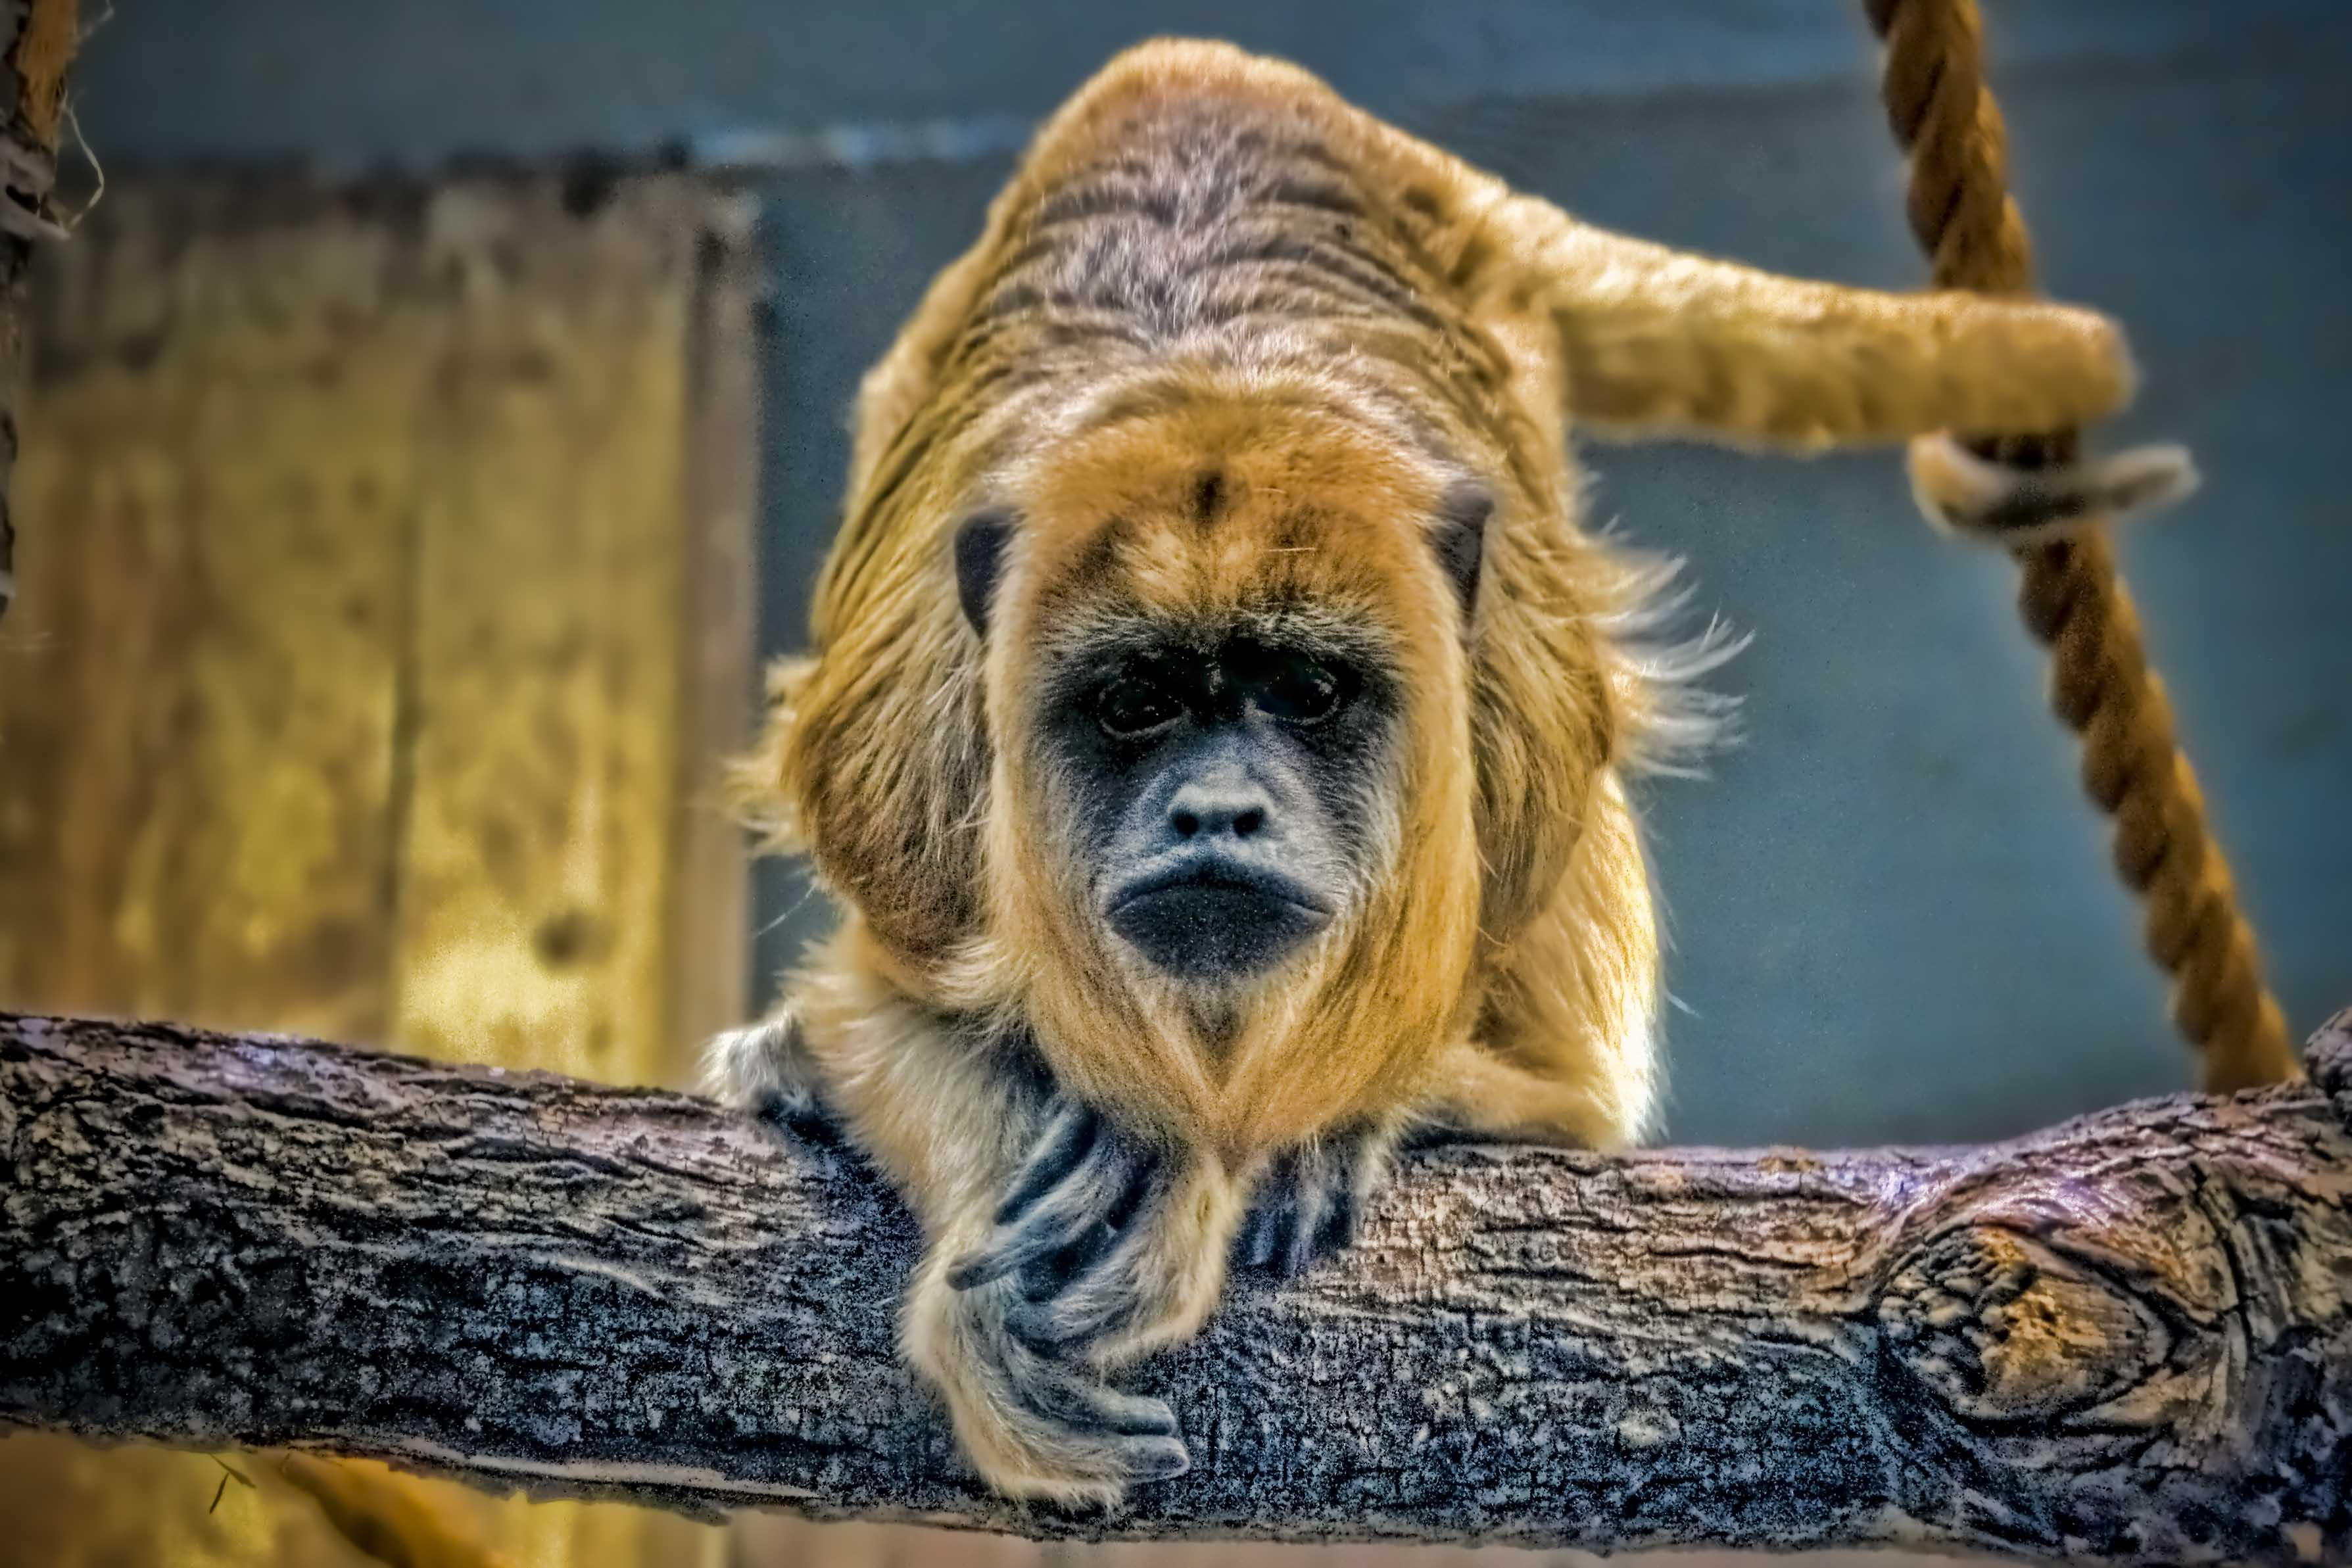 Monkey at the Cleveland Metroparks Zoo